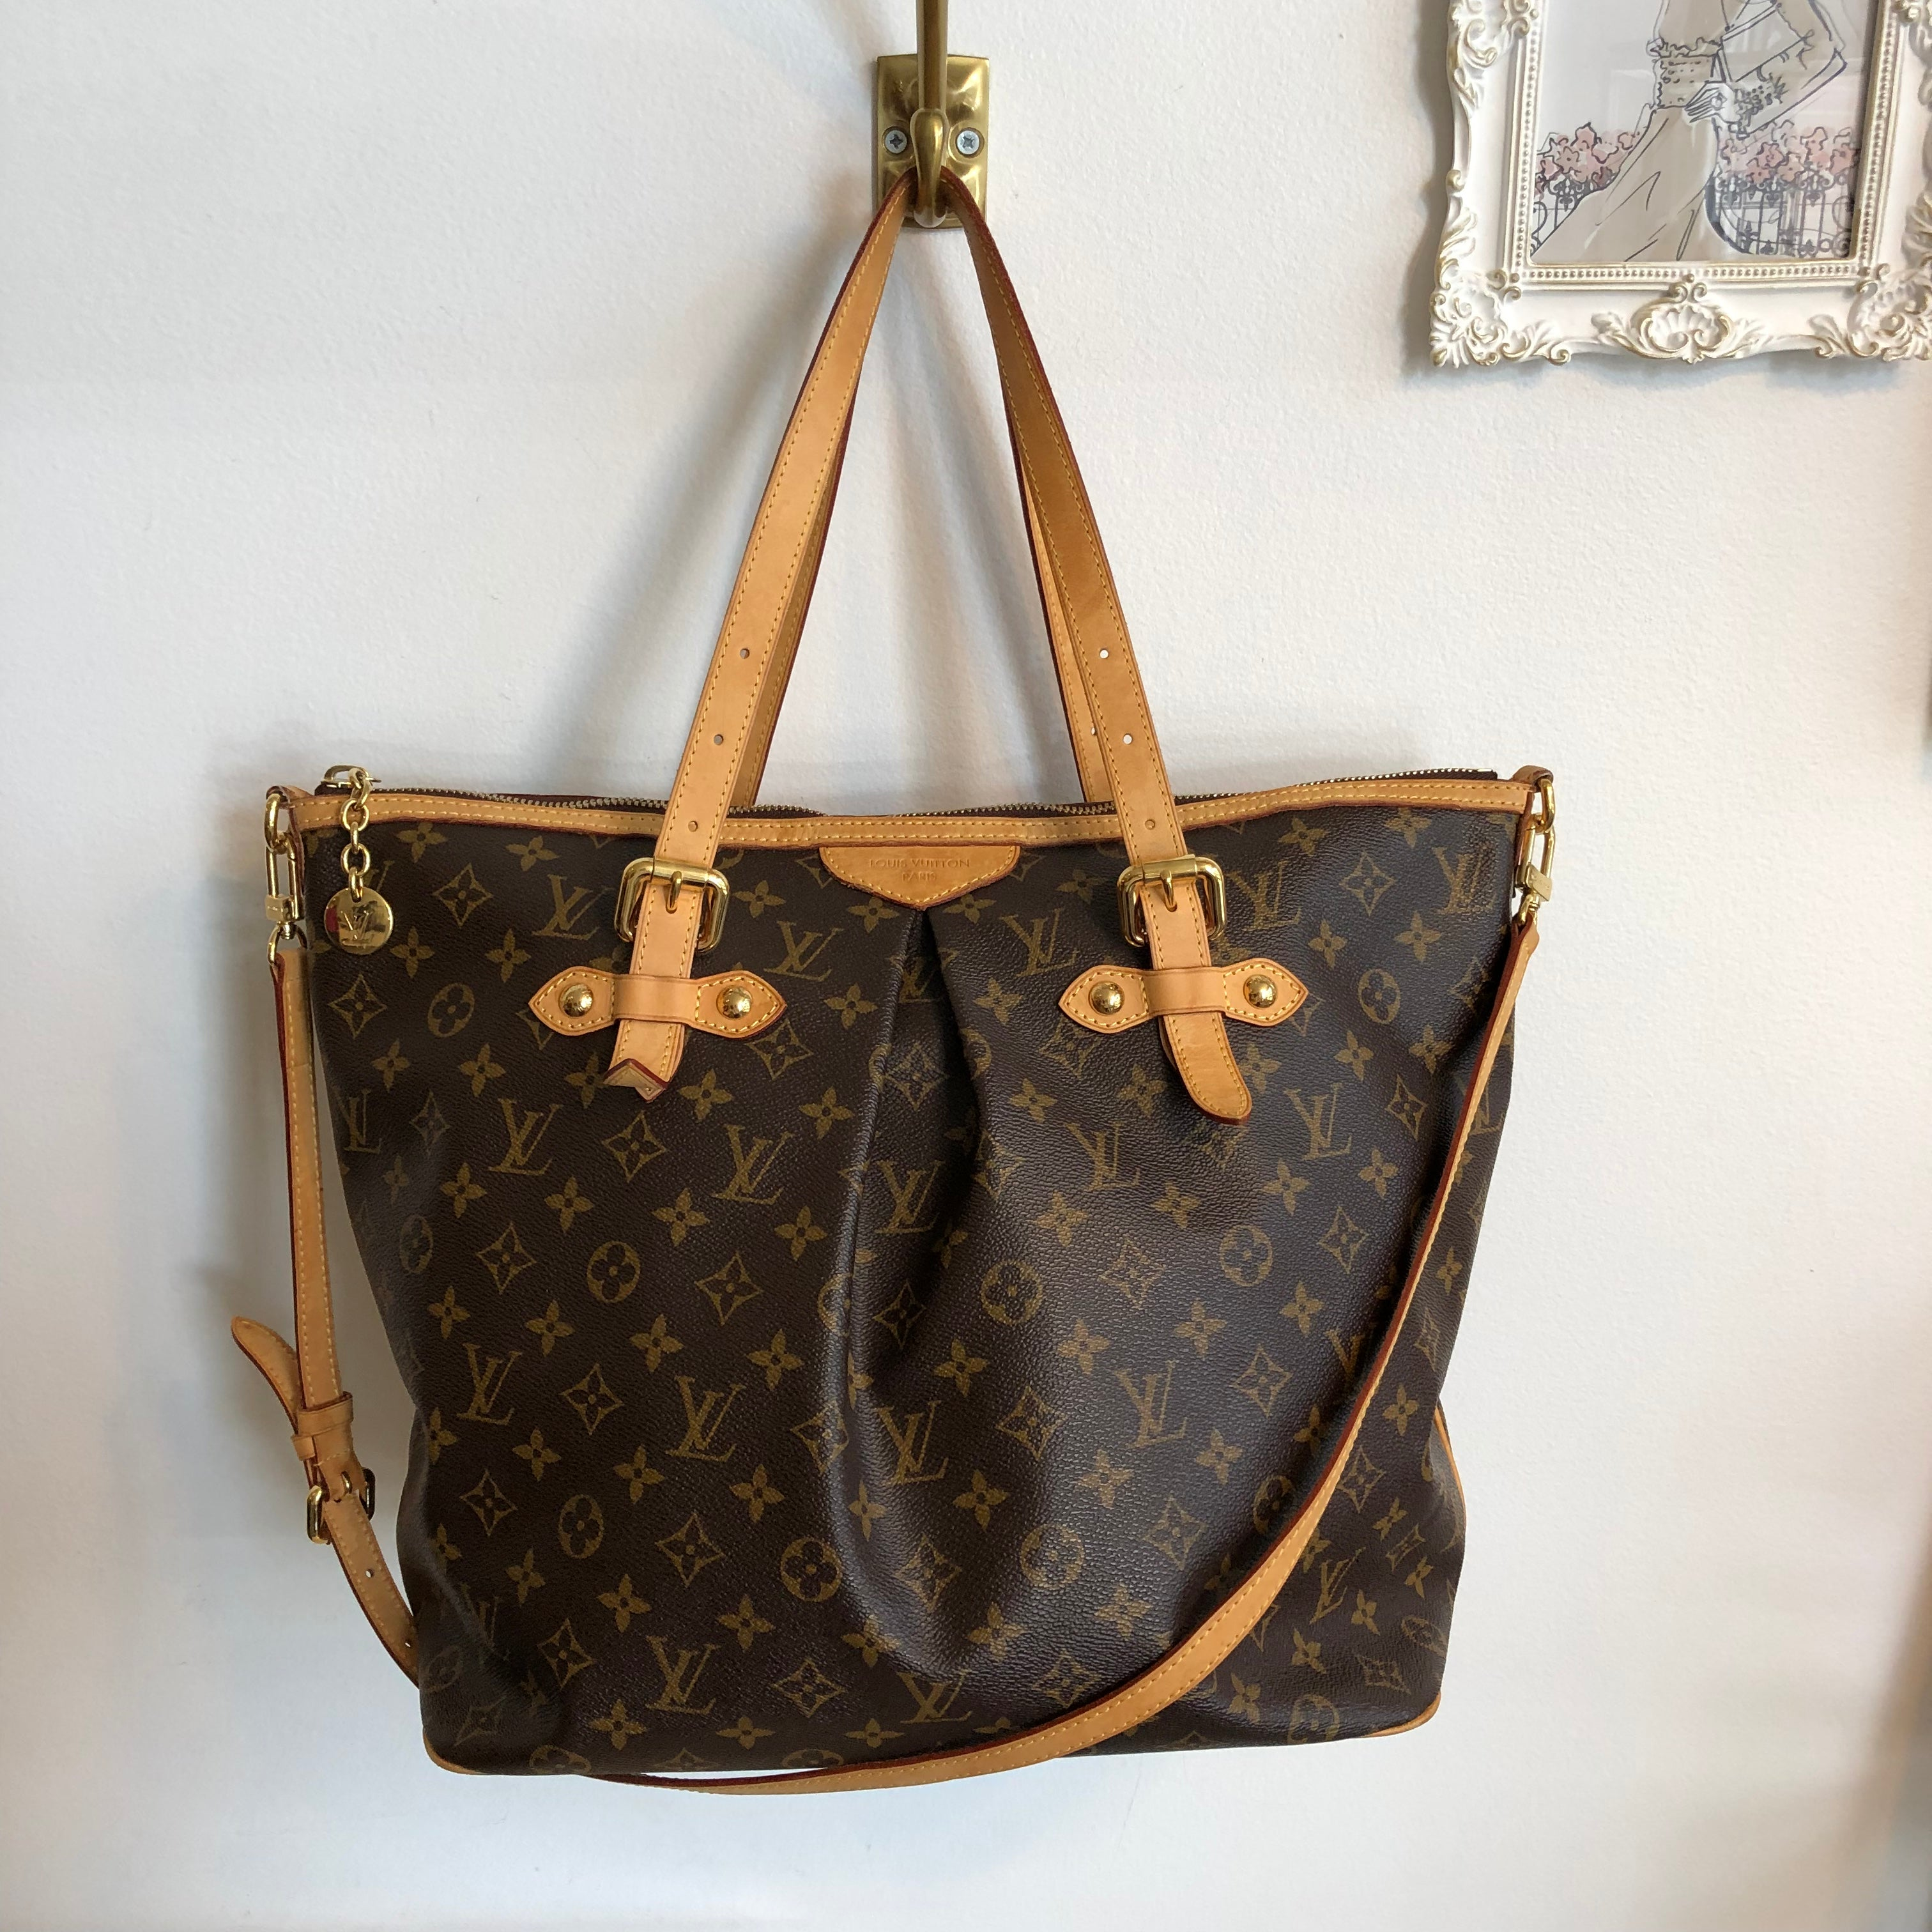 Authentic LOUIS VUITTON Palermo GM